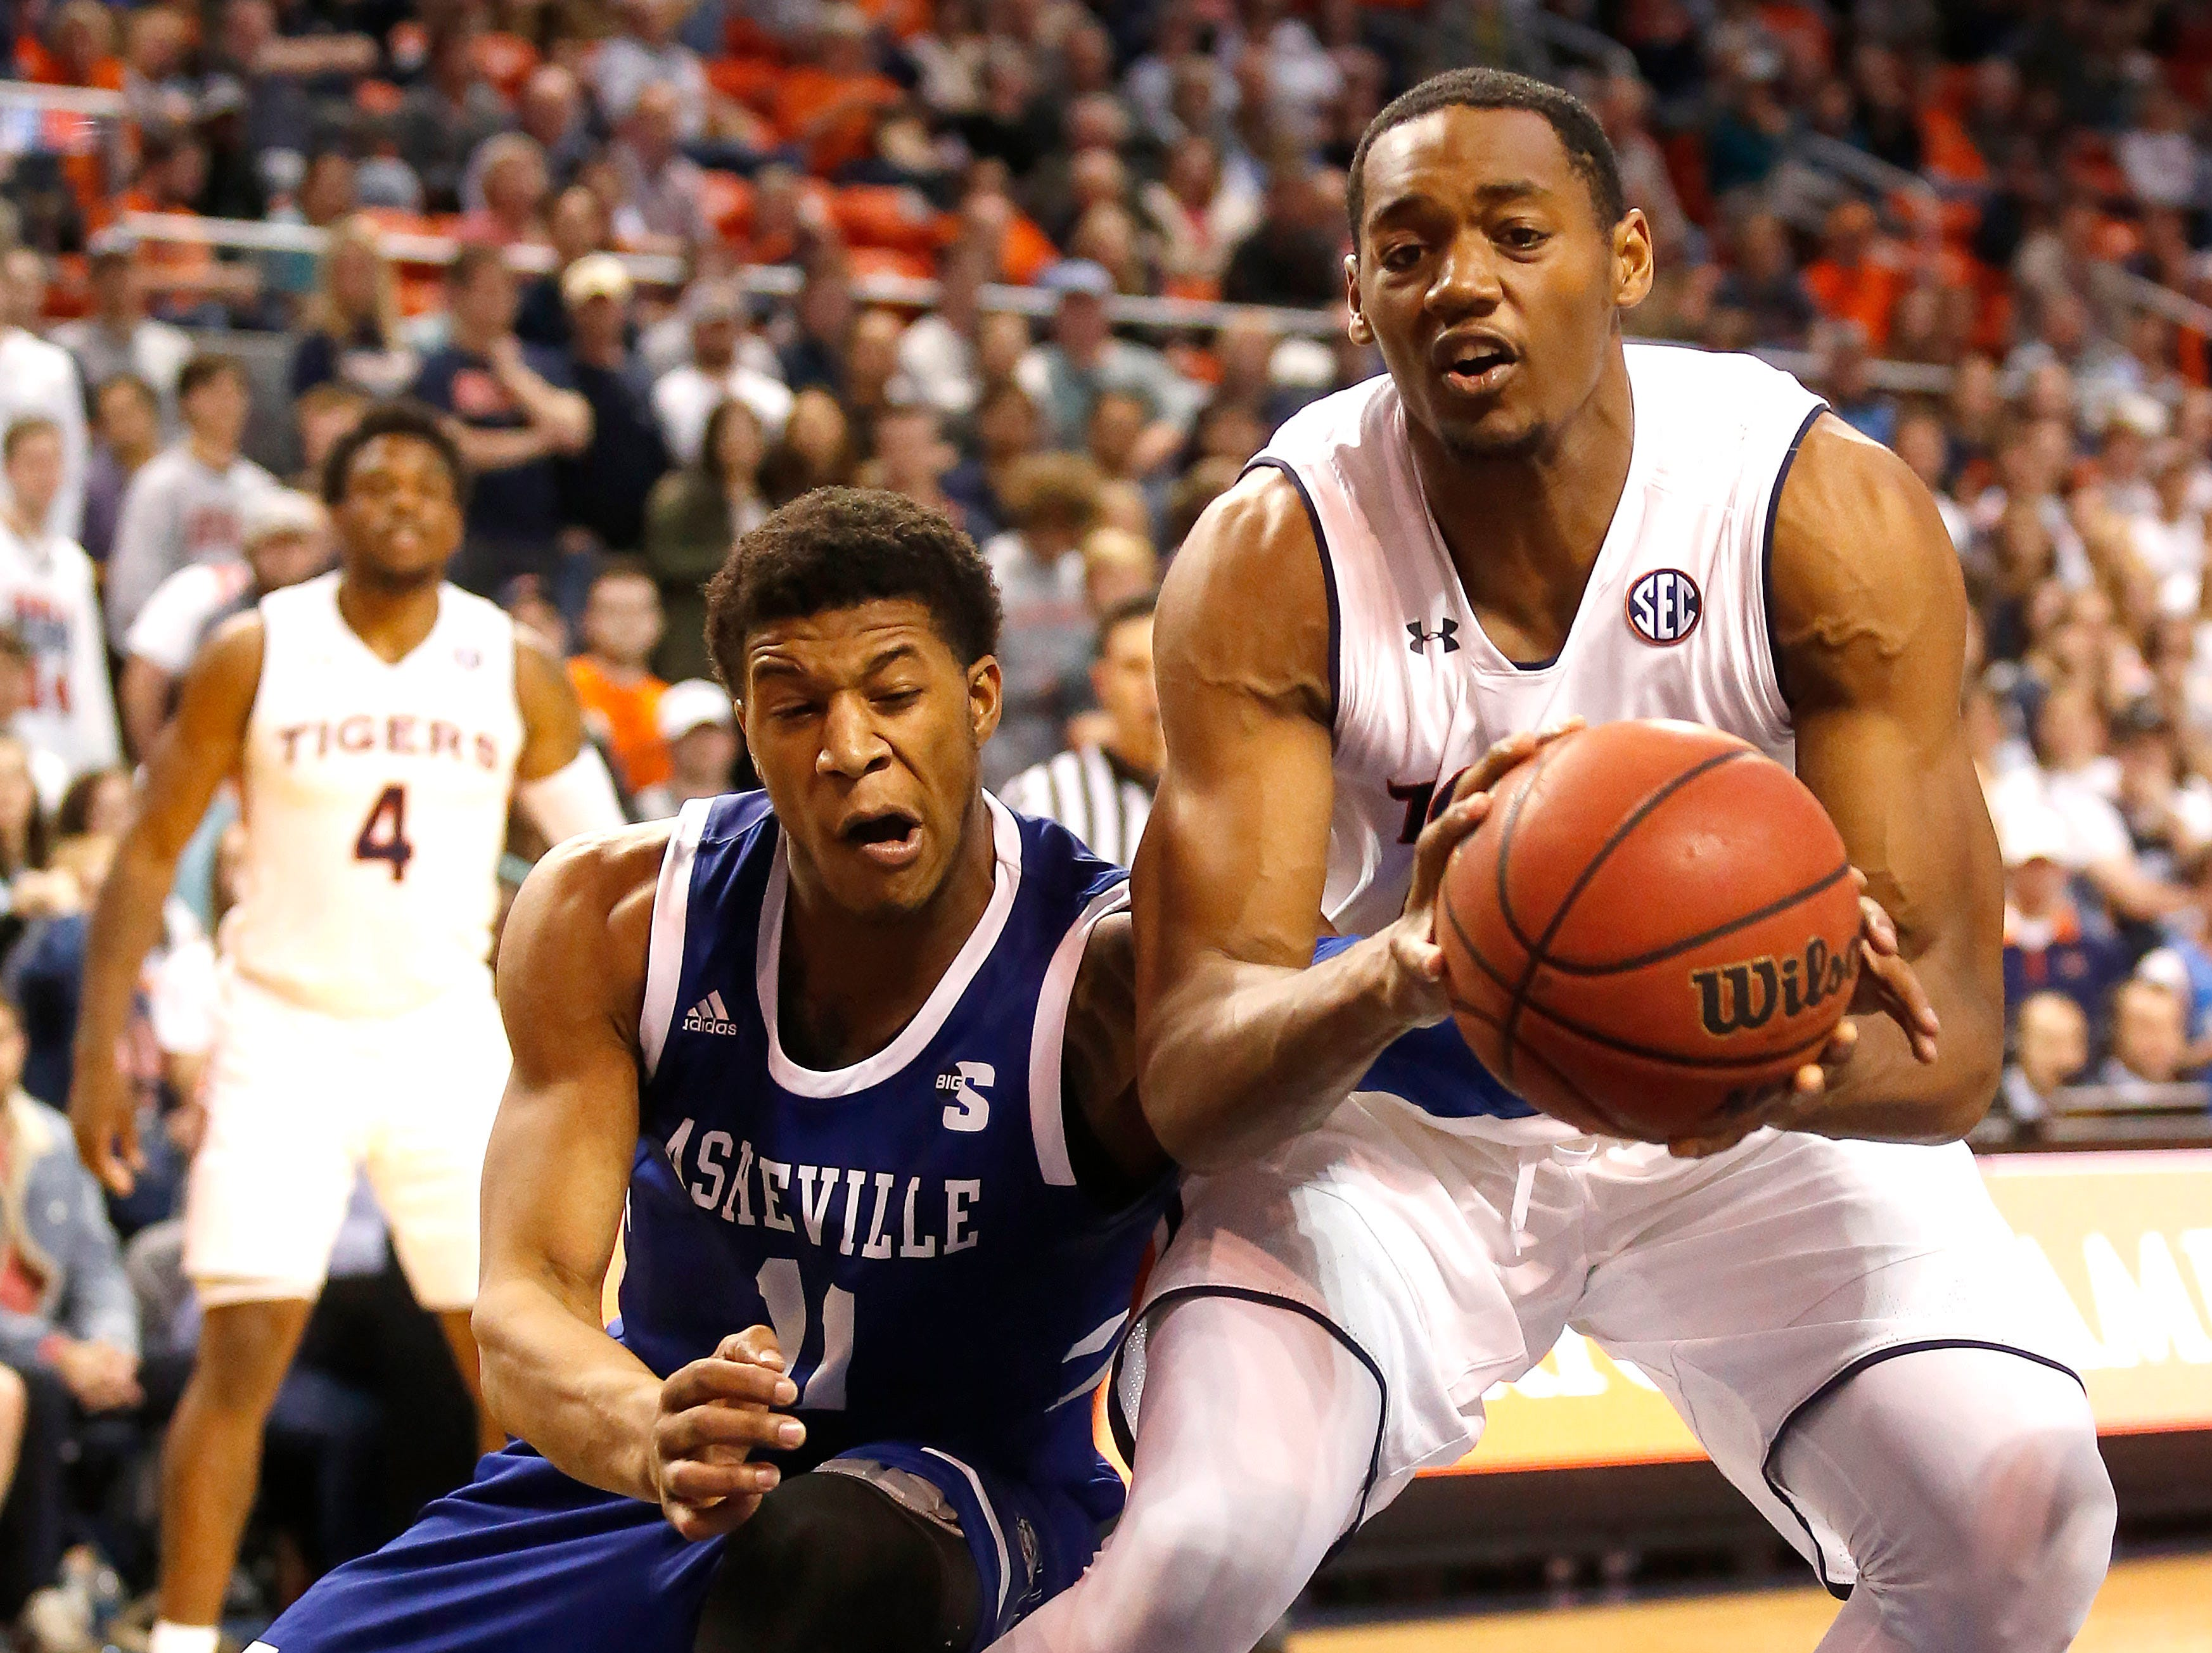 Dec 4, 2018; Auburn, AL, USA; Auburn Tigers center Austin Wiley (50) is fouled by UNC-Asheville Bulldogs guard Jalen Seegars (11) during the second half at Auburn Arena. Mandatory Credit: John Reed-USA TODAY Sports